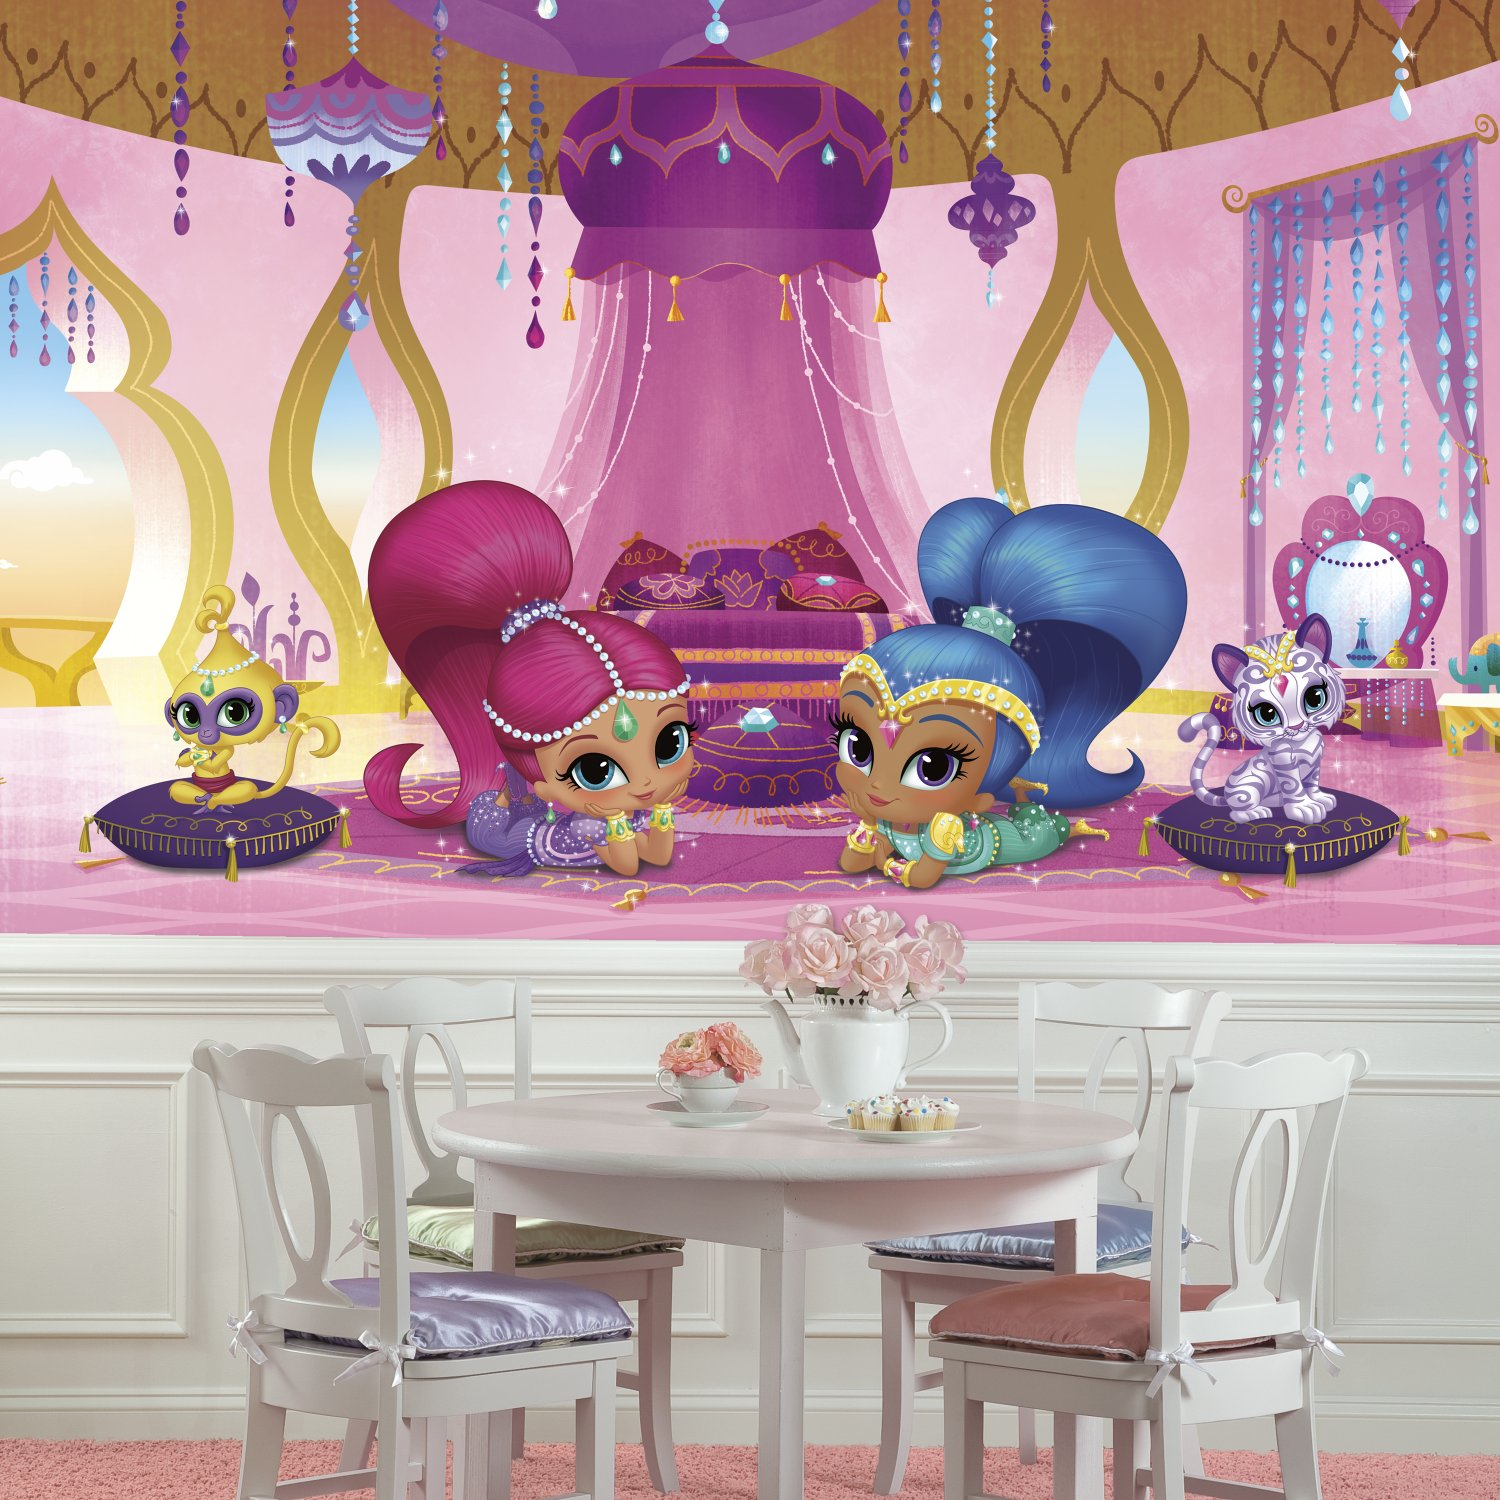 RoomMates JL1386M Shimmer & Shine Genie Palace Xl Chair Rail Prepasted Mural 6' x 10.5' - Ultra-Strippable